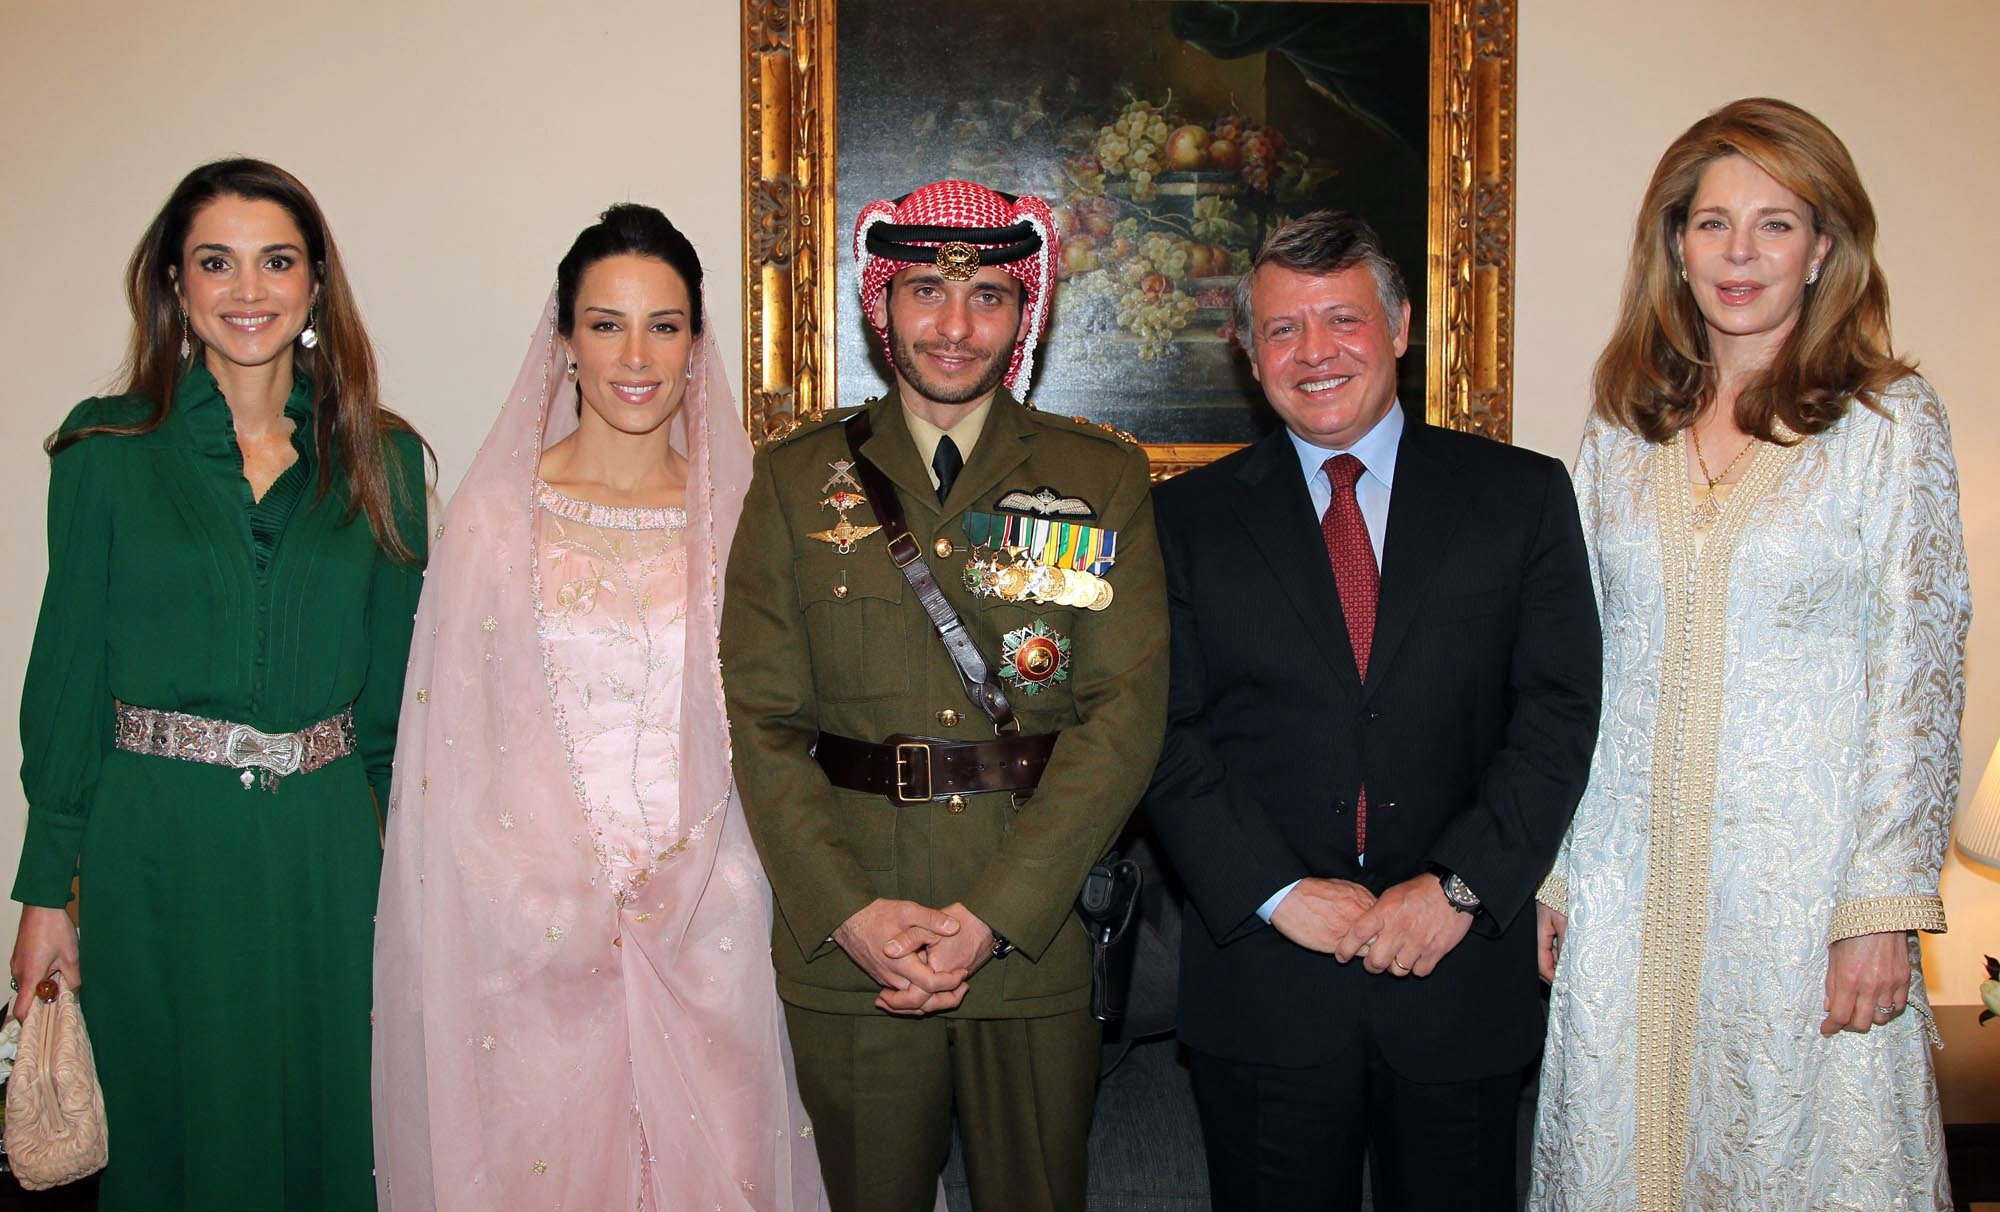 In this file handout picture released by the Jordanian news agency Petra on January 12, 2012, shows Jordan's King Abdullah (2nd R), Queen Noor, widow of late King Hussein (R), and Queen Rania (L) posing for a picture with Prince Hamza, half-brother of Jordan's King Abdullah and his new wife Princess Basma Otoum during their Muslim wedding ceremony at the Royal Palace in Amman. (Photo by Yousef Allan/Petra via AFP)